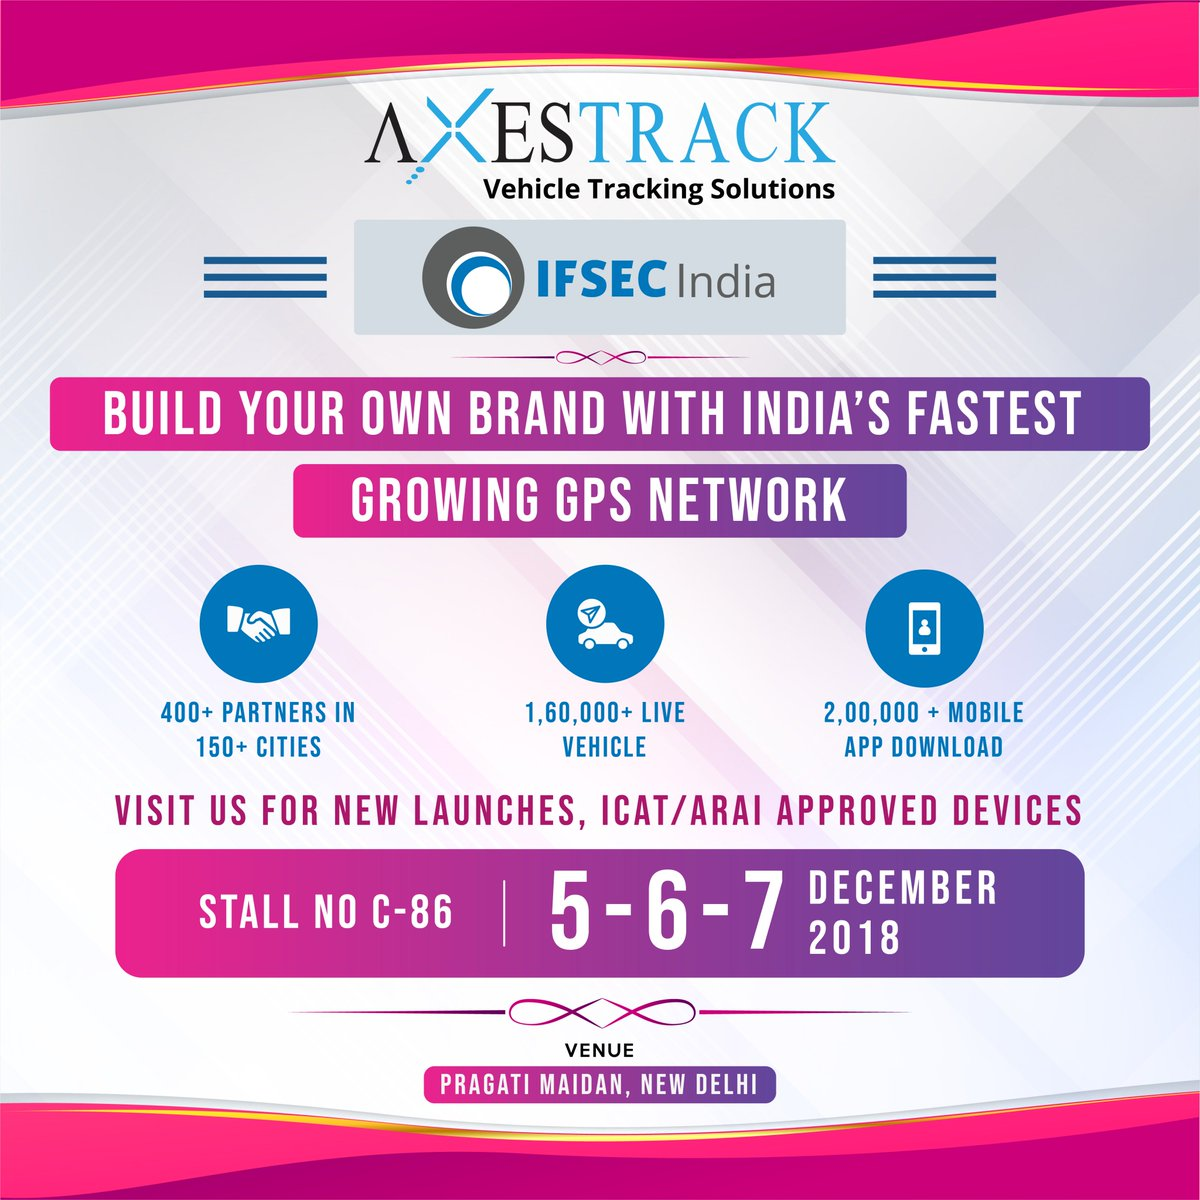 Axestrack is proud to be at #IFSEC 2018. We are excited to showcase our new Launches and Exciting offers with advanced Vehicle Tracking software. axestrack.com #GPS #GPSDevice #VehicleTrackingSolutions #BuildYourOwnBrand #NewBusinessOpportunity #Exhibition